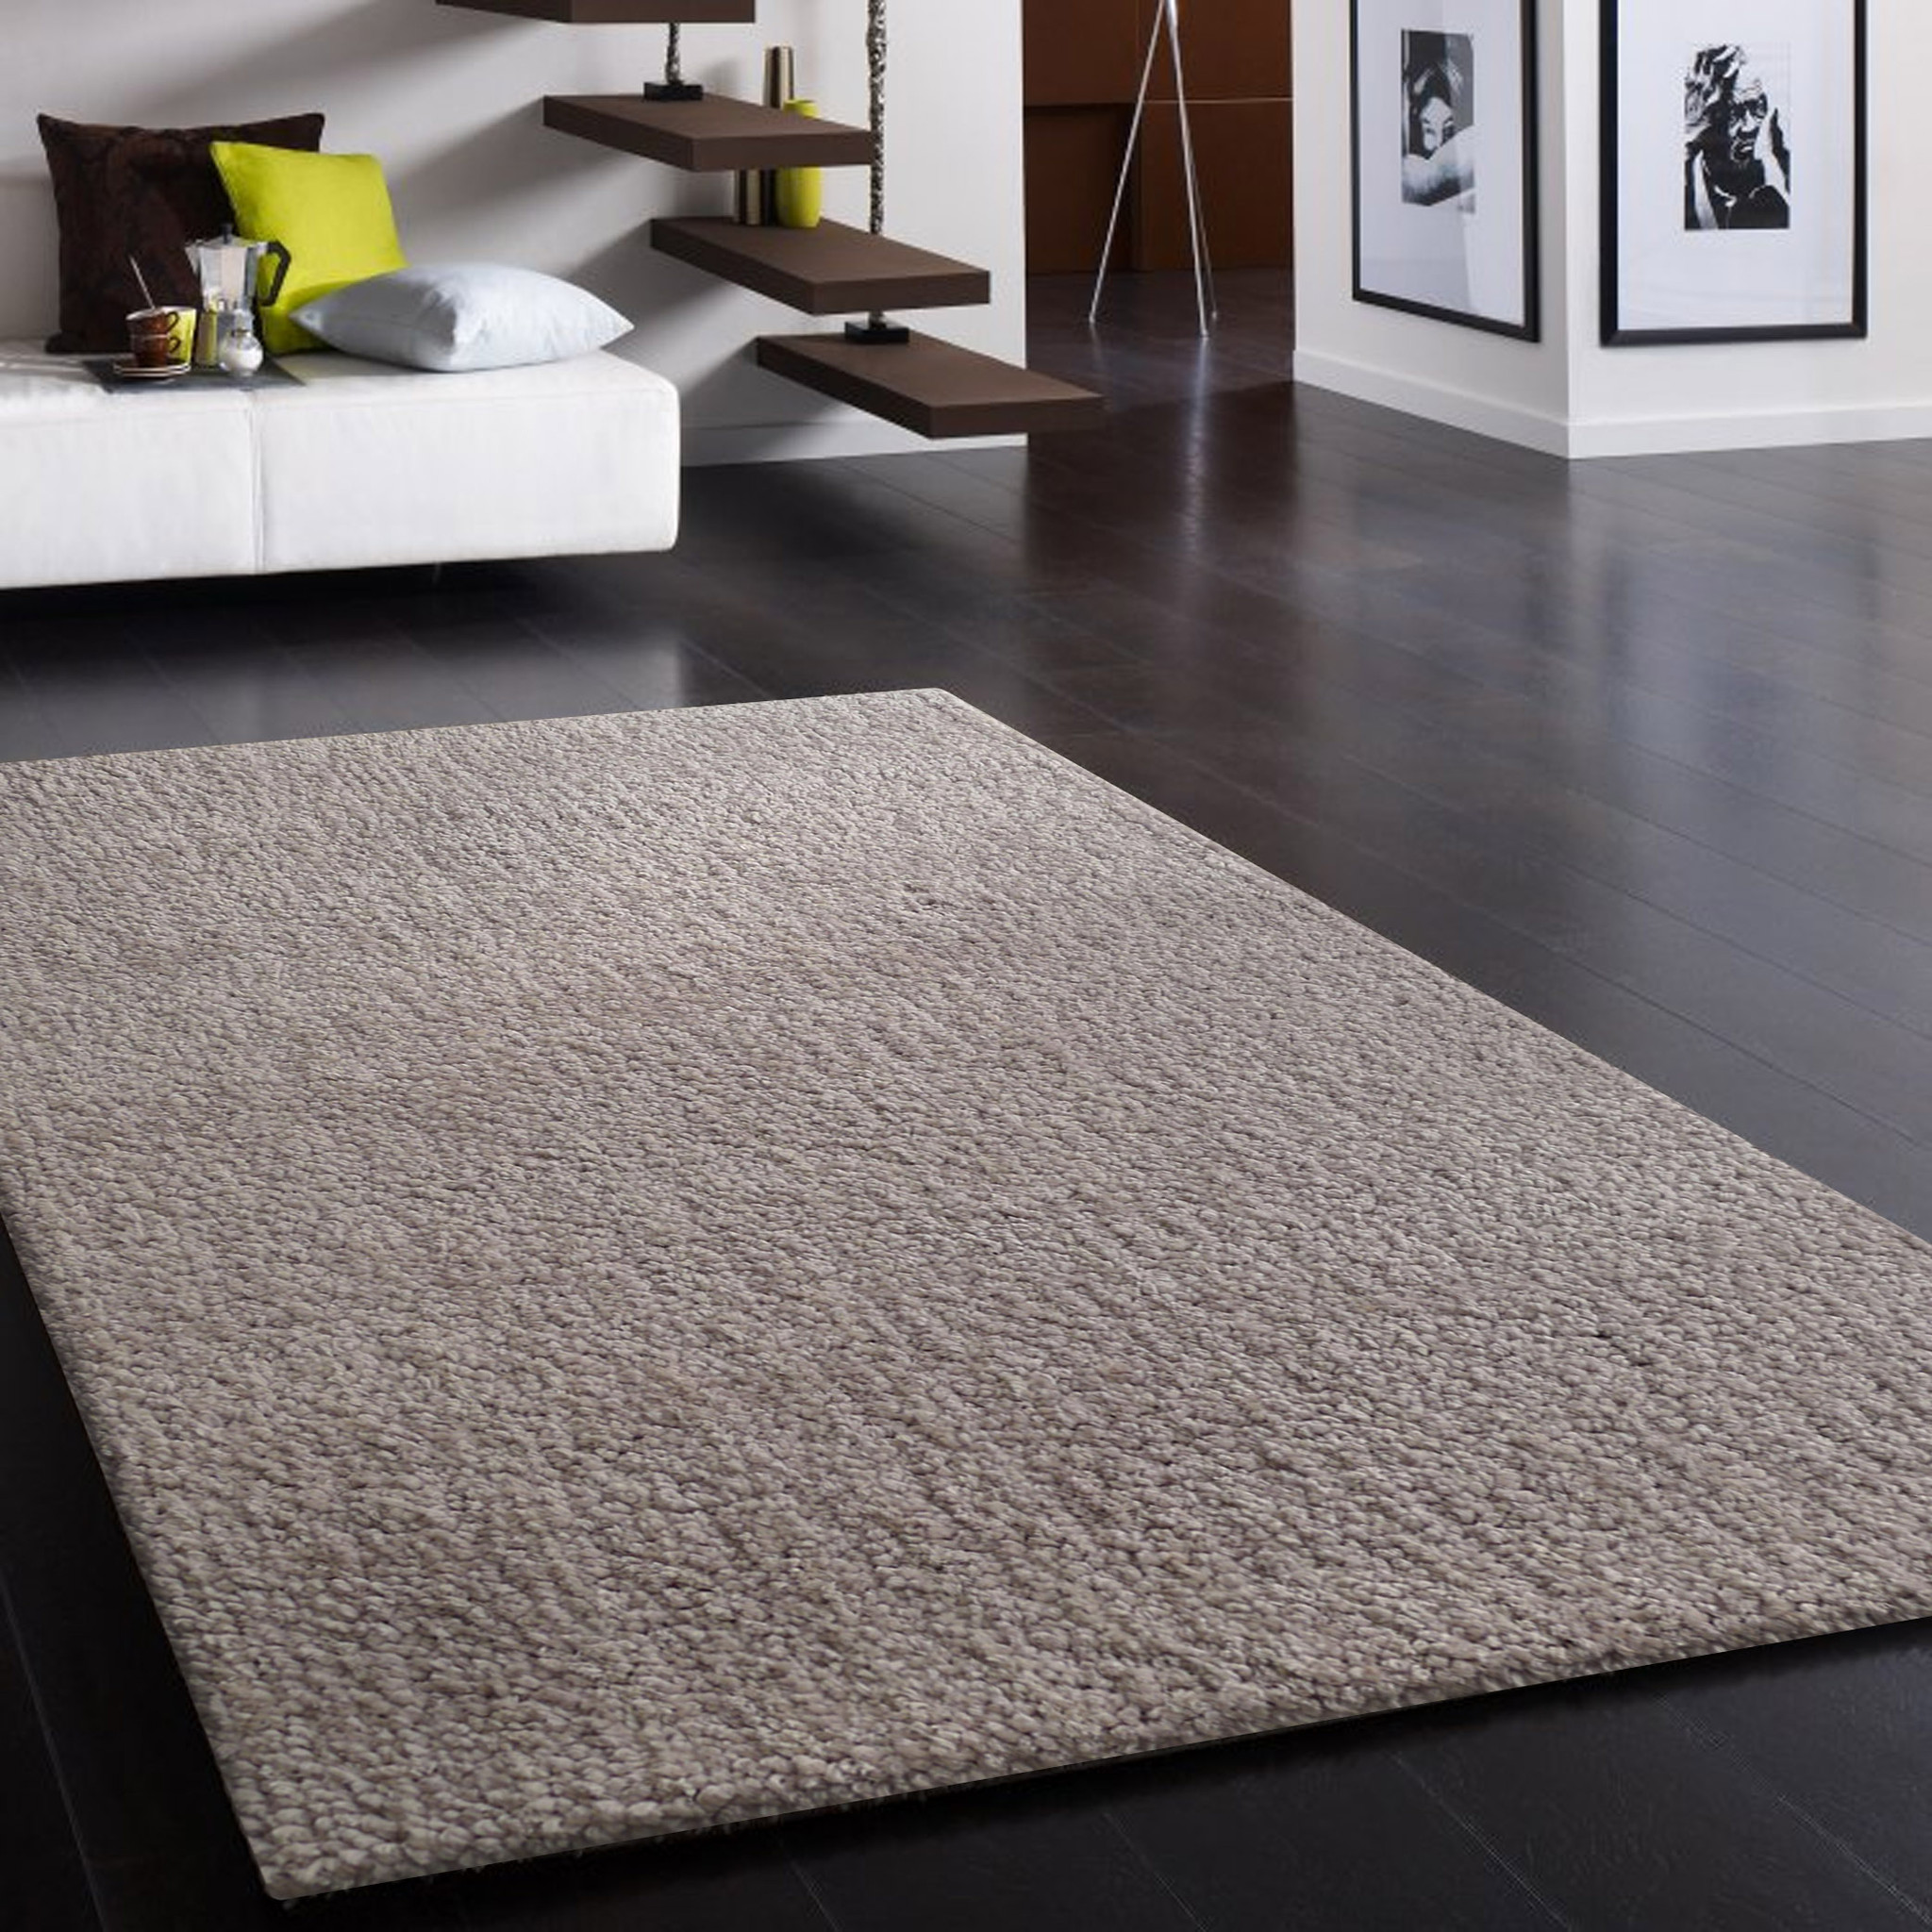 New Hand-tufted Solid Silver Thick Plush Shag Area Rug 5u0027 x 7u0027 ft . thick plush area rugs